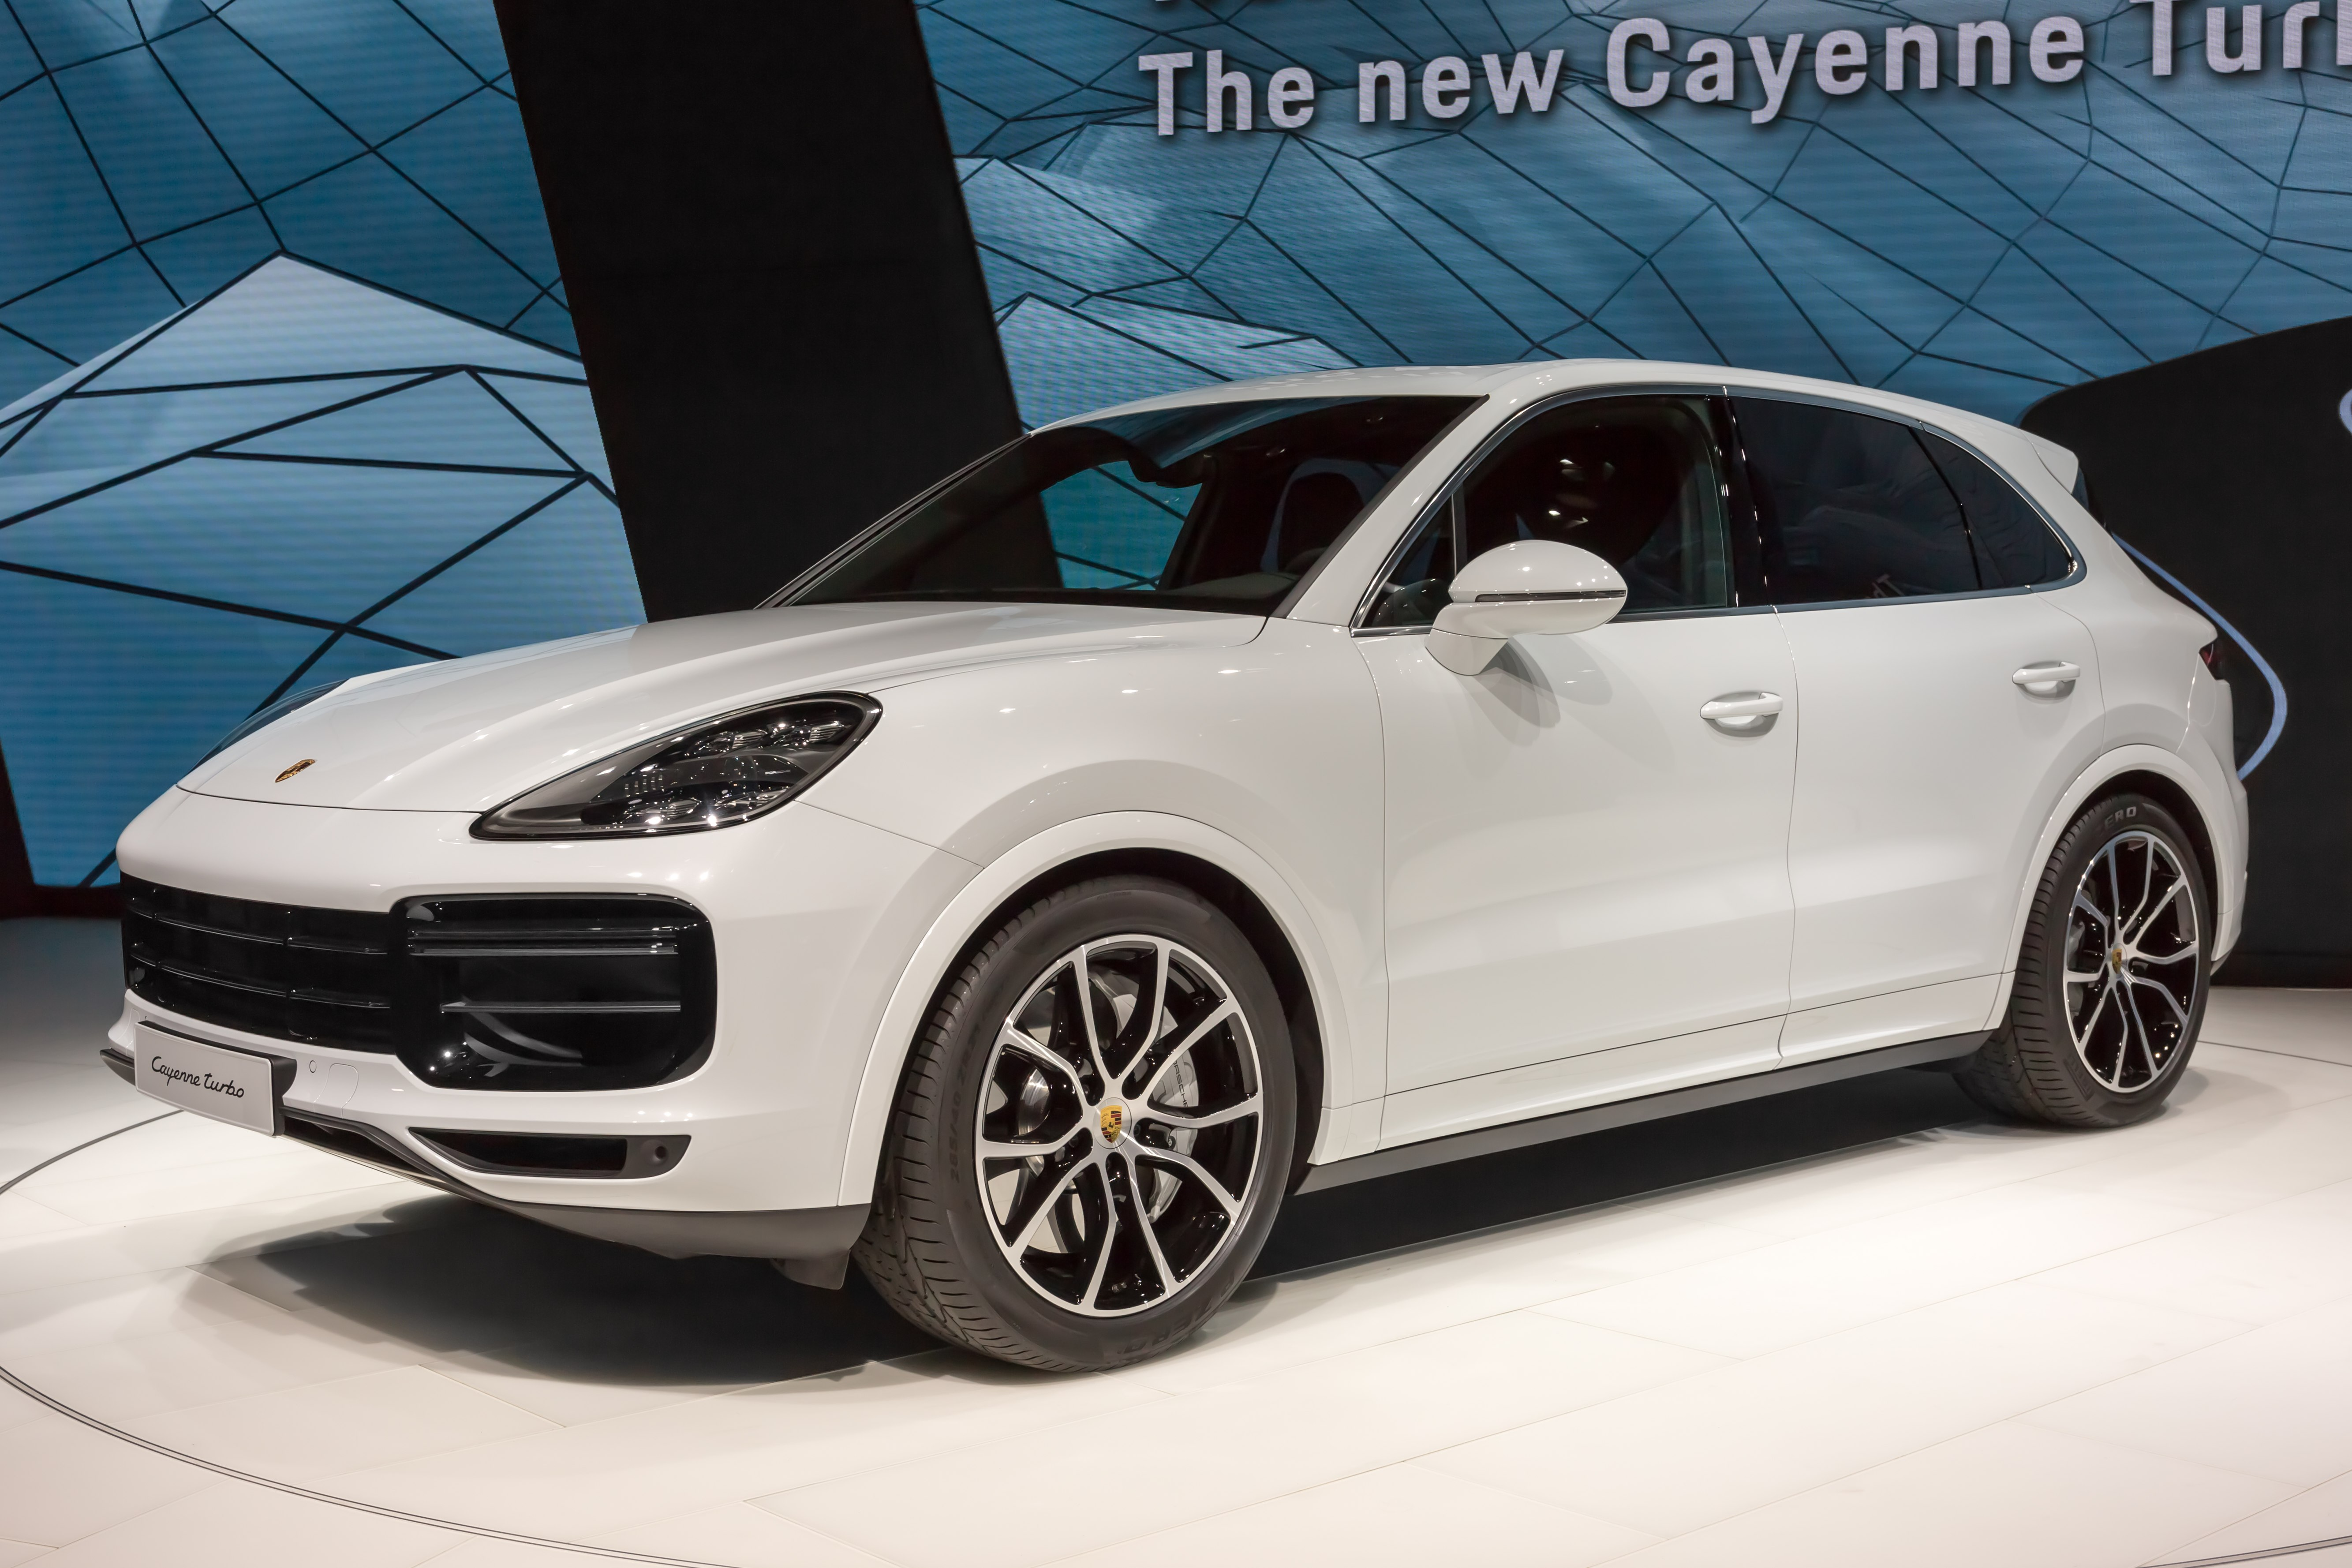 Porsche Cayenne - The complete information and online sale